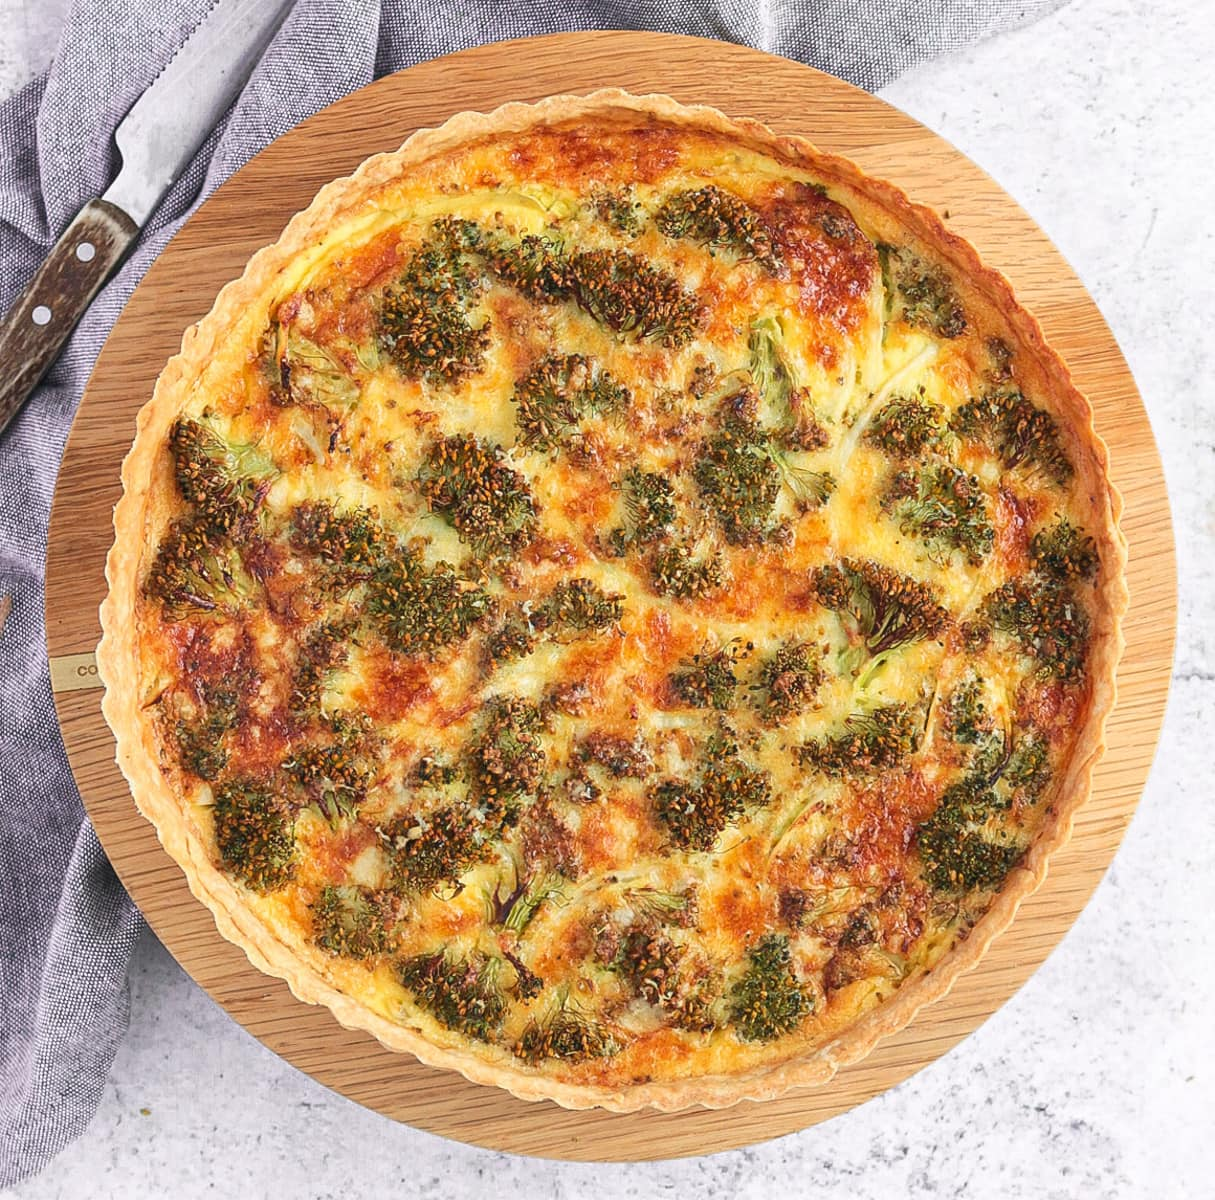 Broccoli Quiche from above on a wooden board